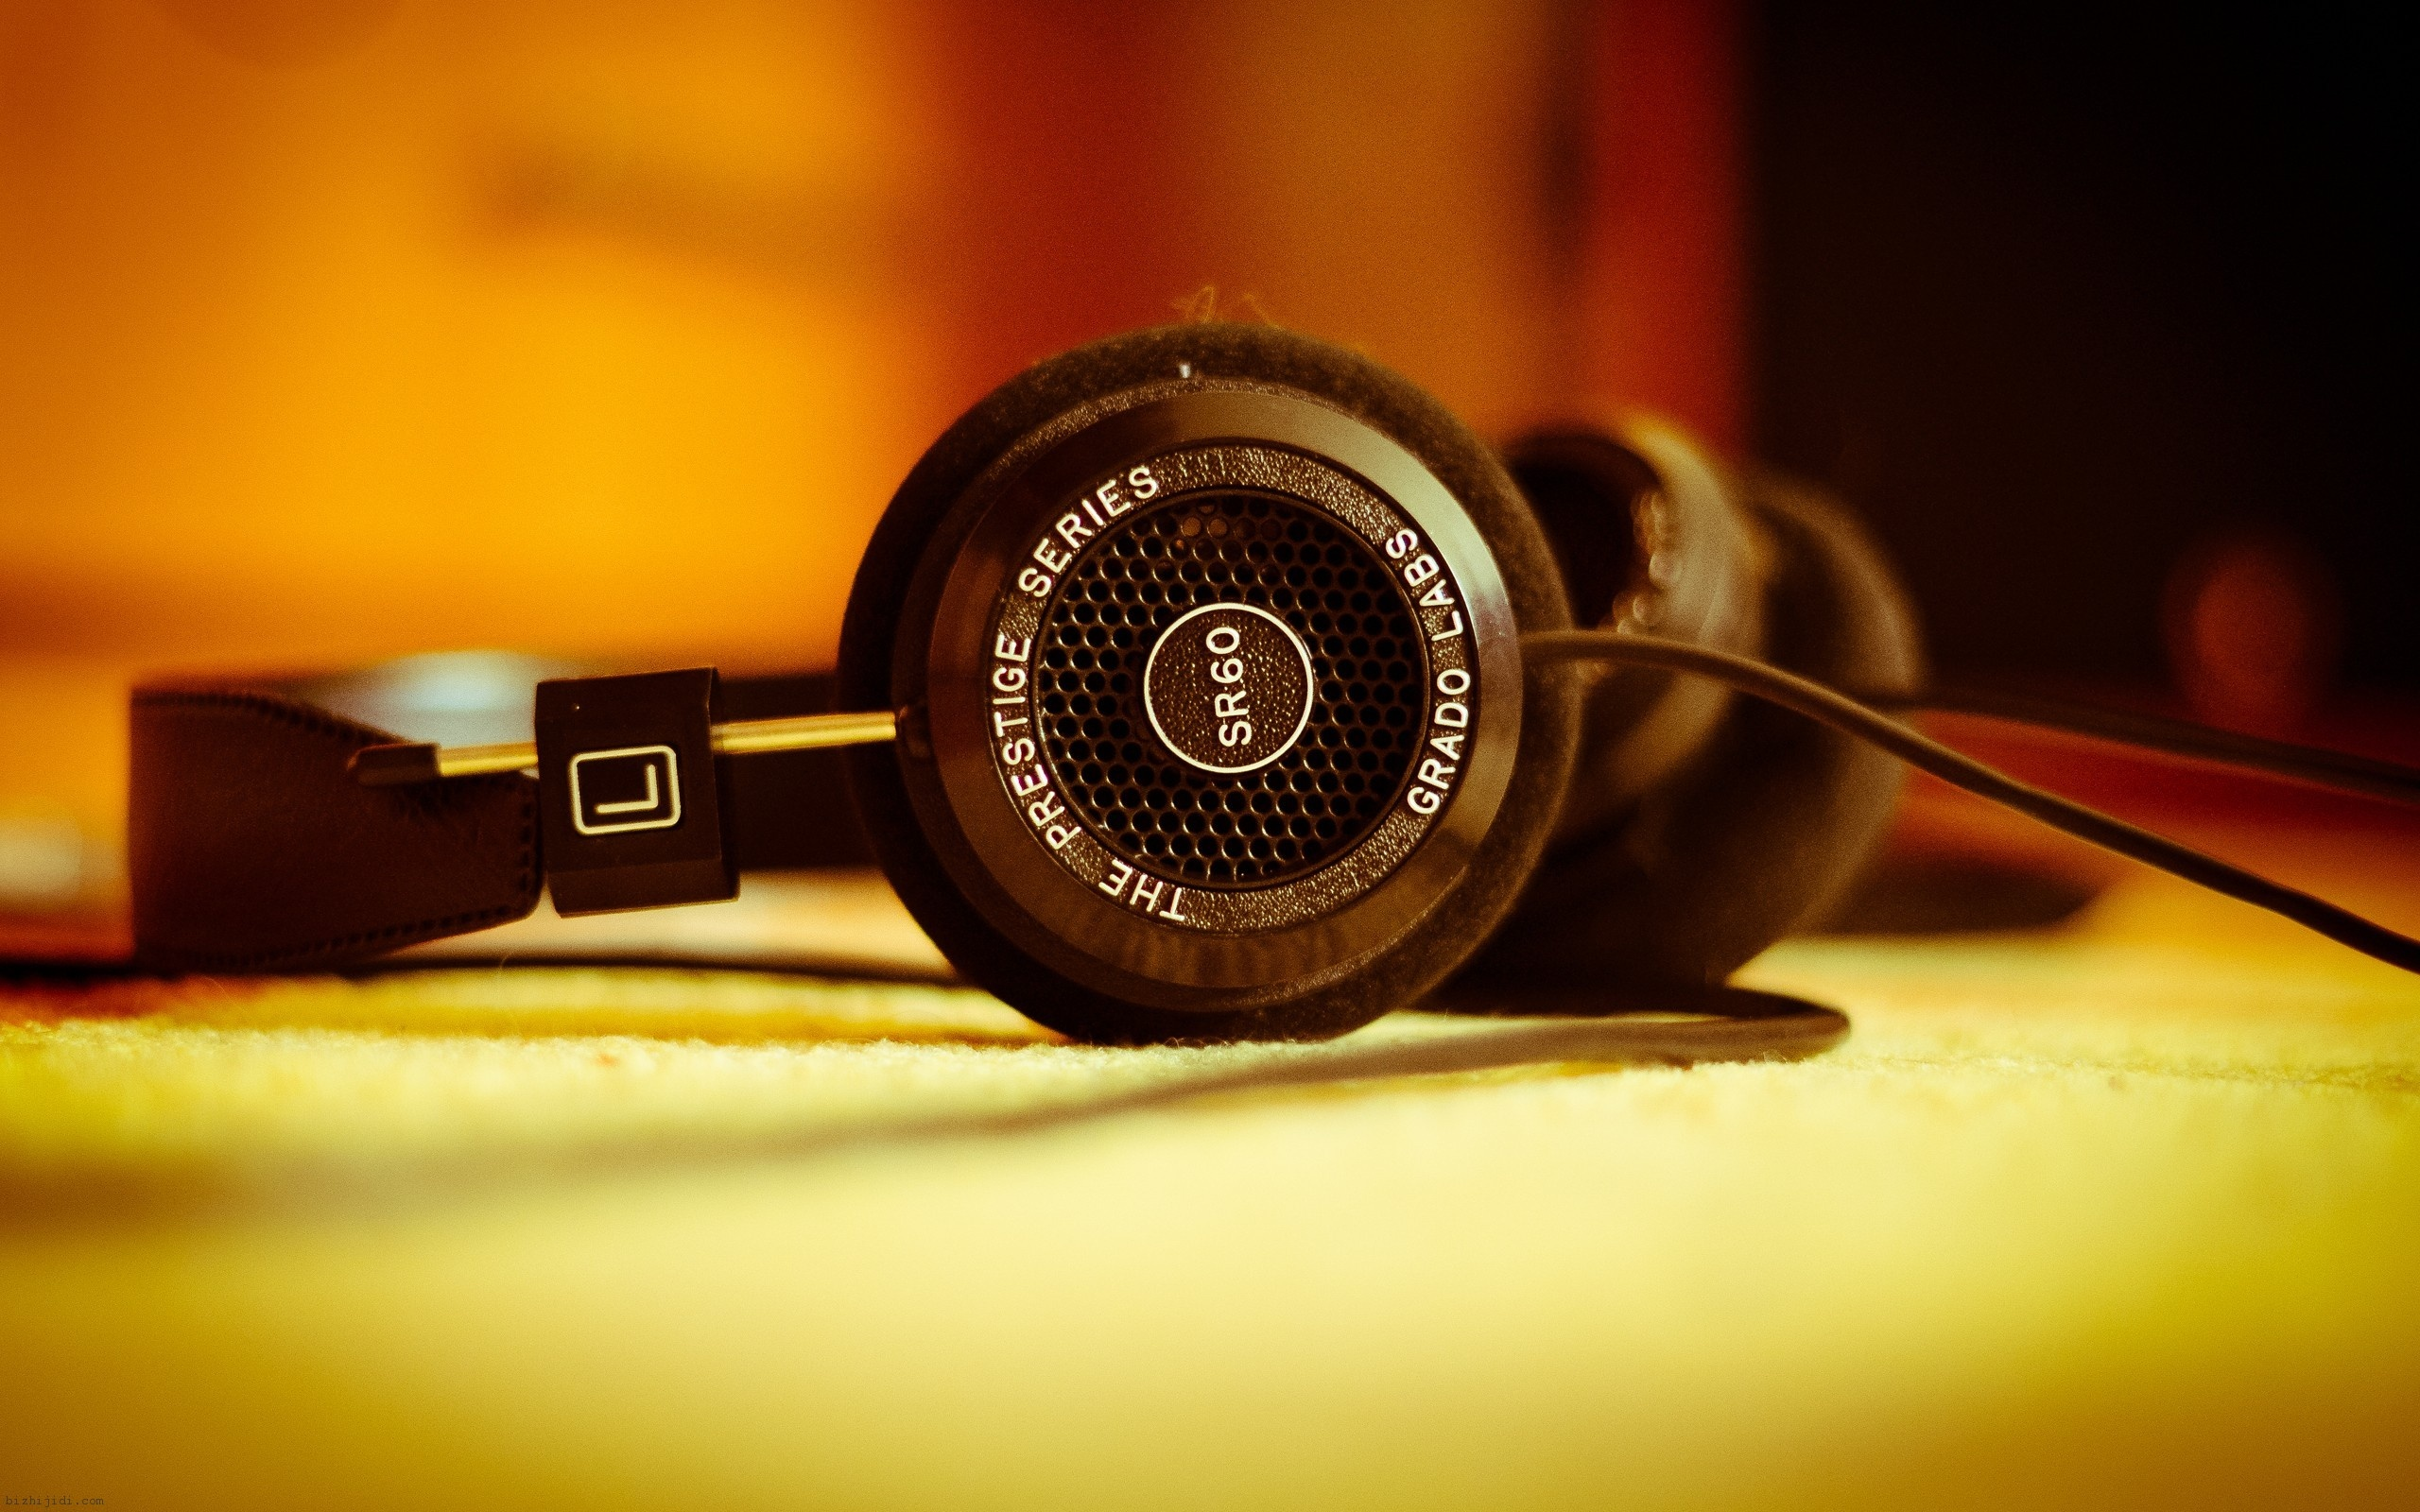 Headphones music grado 2560 x 1600 download close